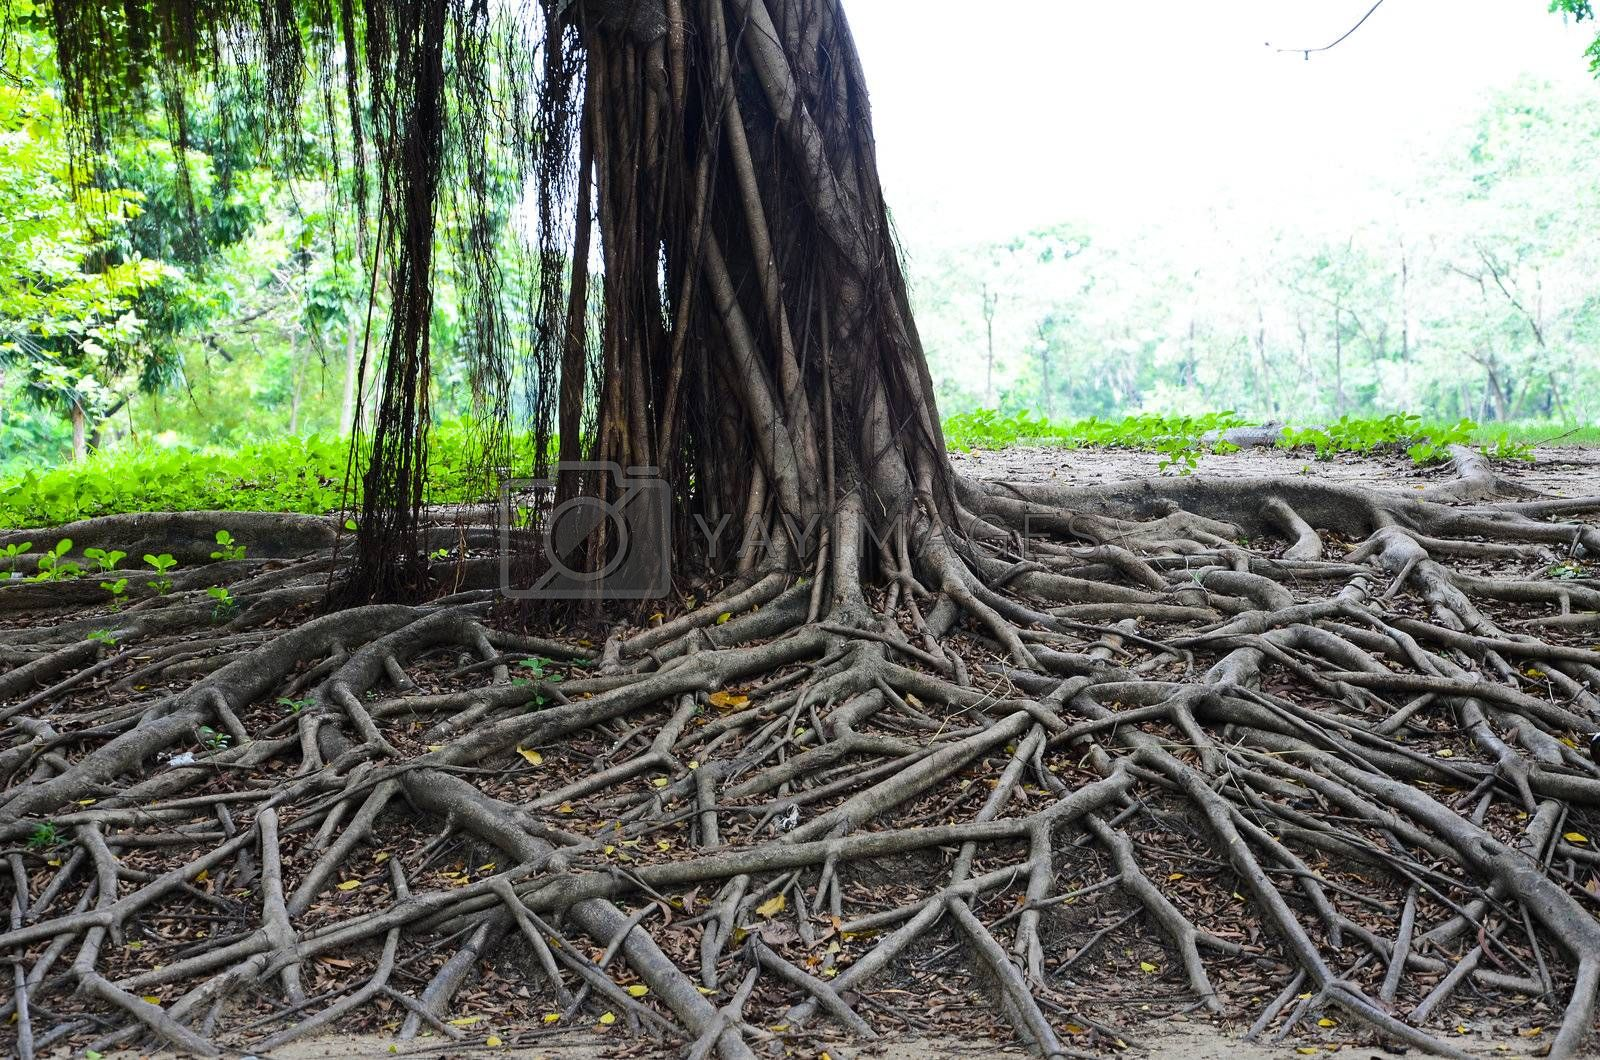 Big banyan tree in Park of Thailand.